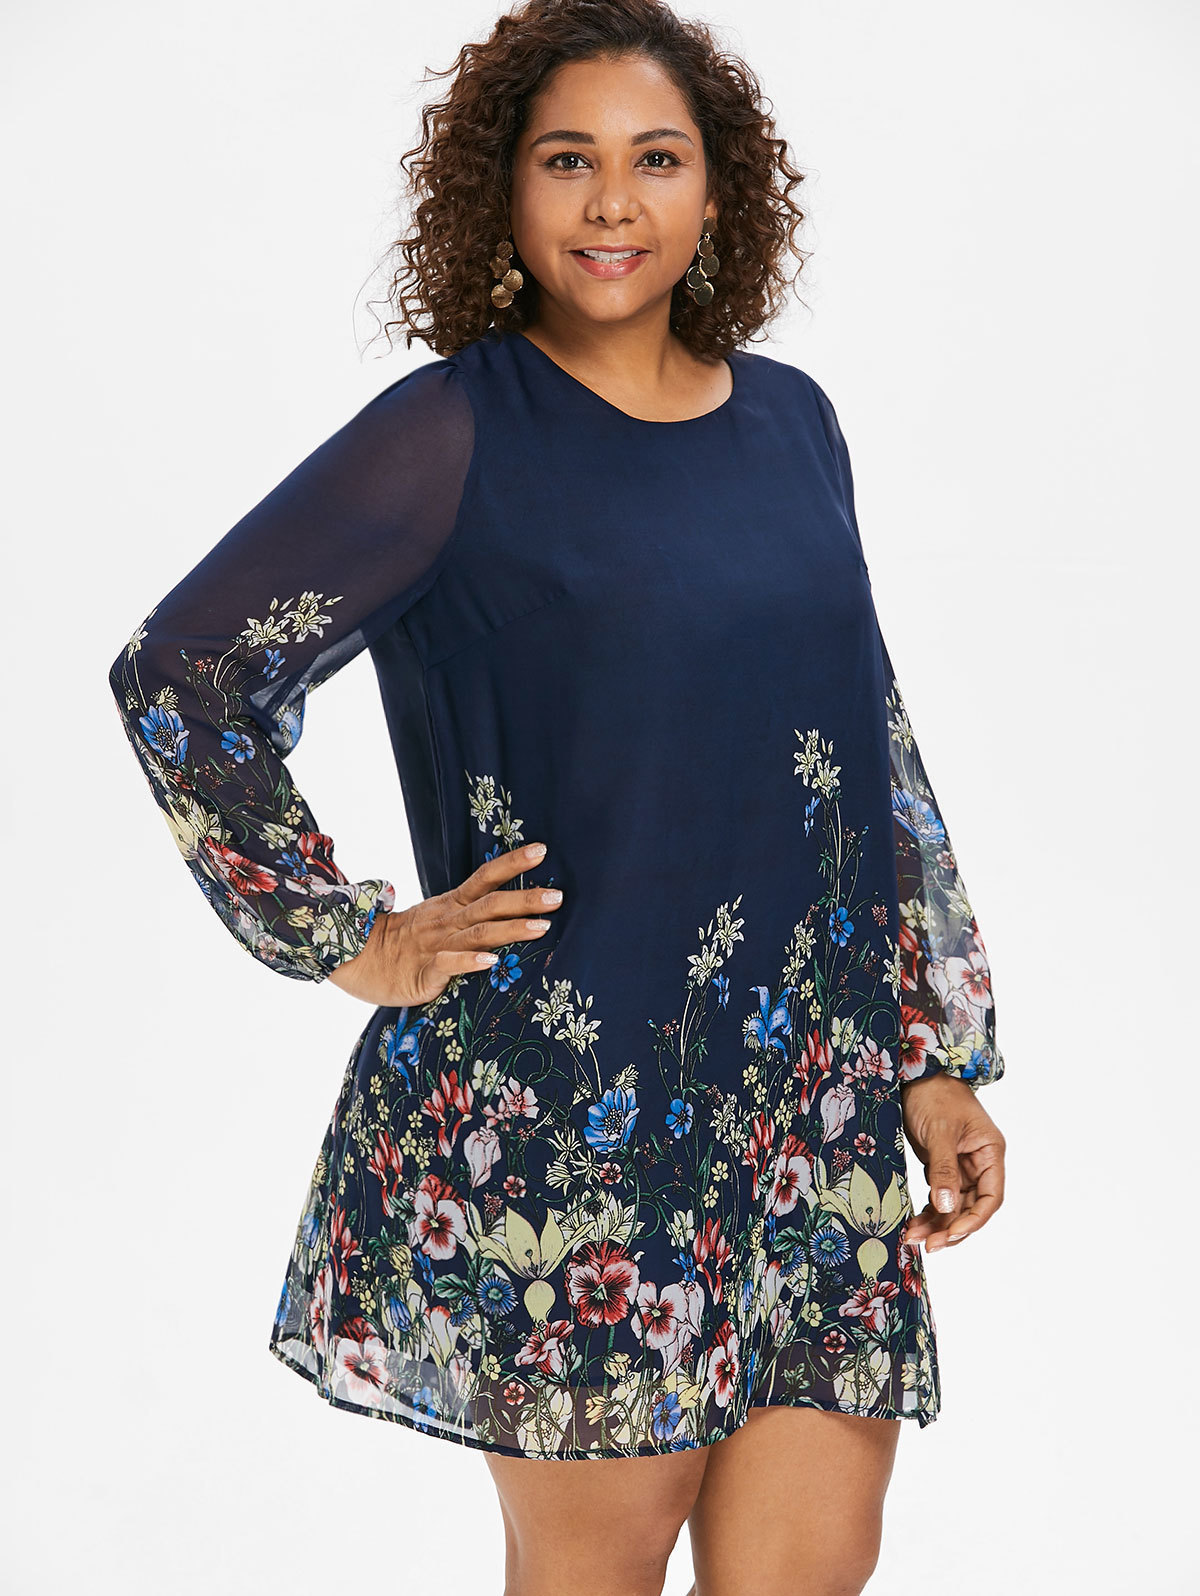 Wipalo Navy Blue Plus Size Floral Embroidery Tunic Dress Spring Summer Elegant Large Sizes Tribal Flower Print Vocation Dress T3190608